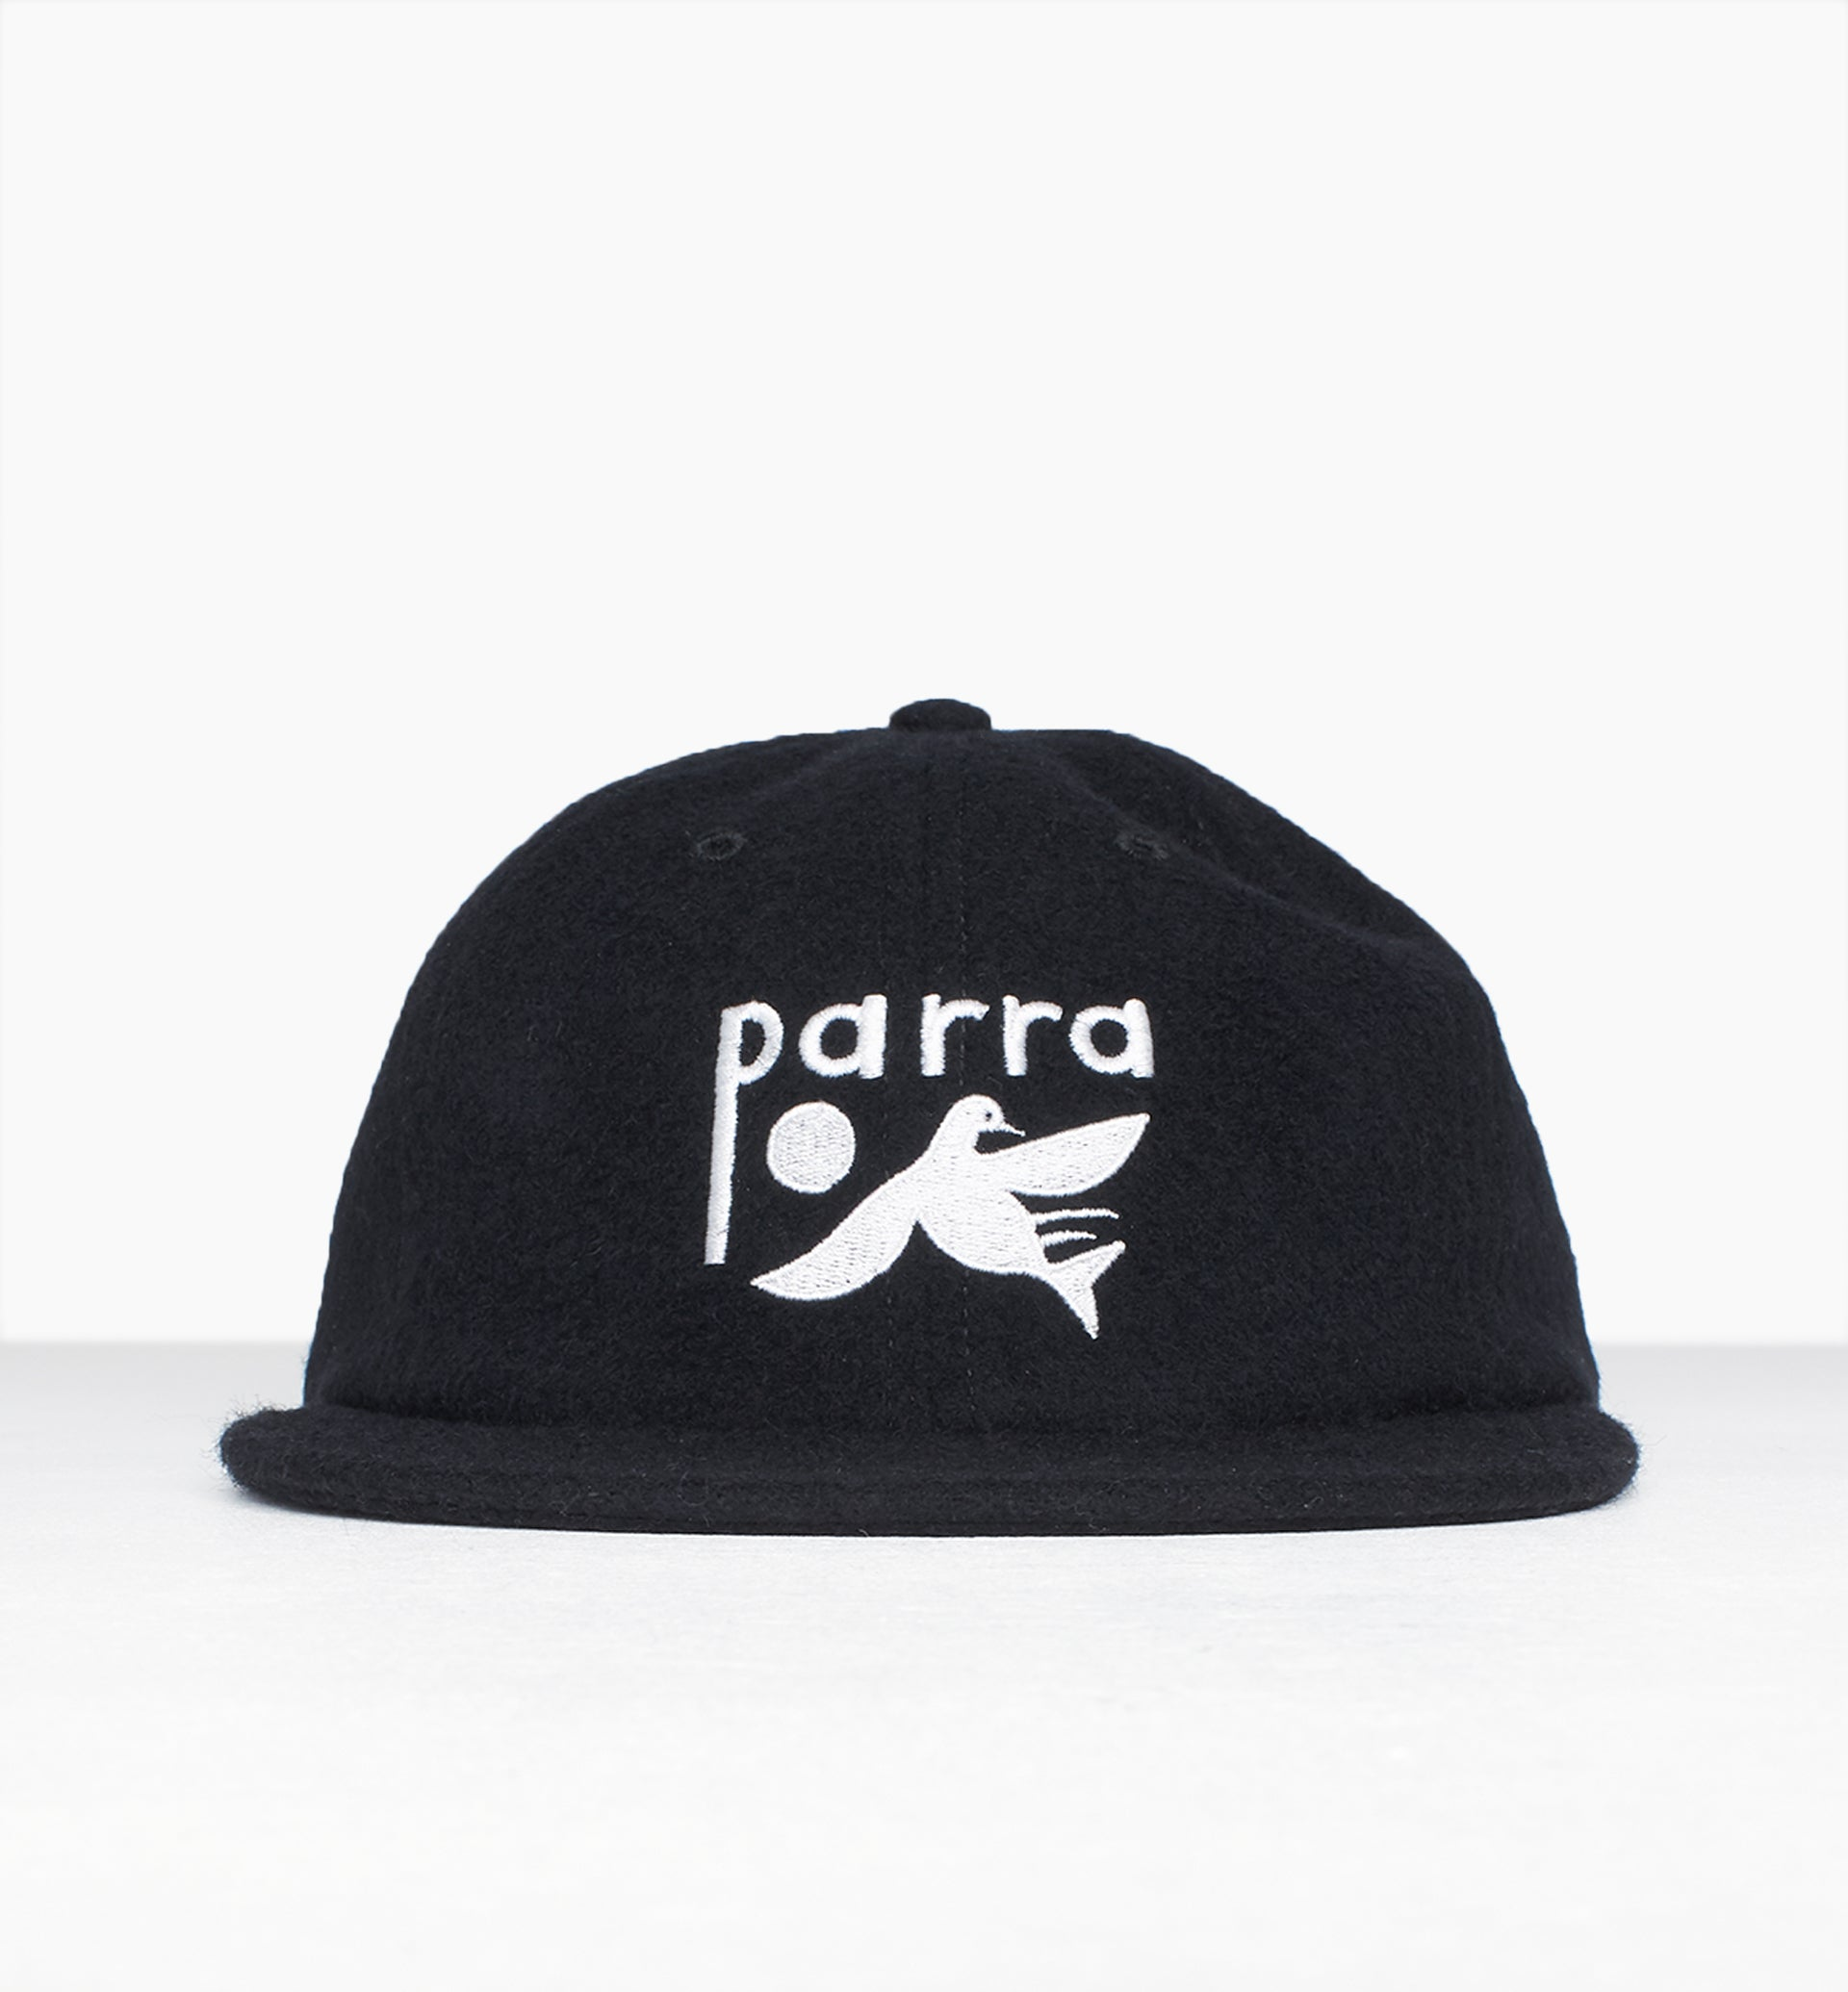 Parra - bird dodging ball 6 panel hat